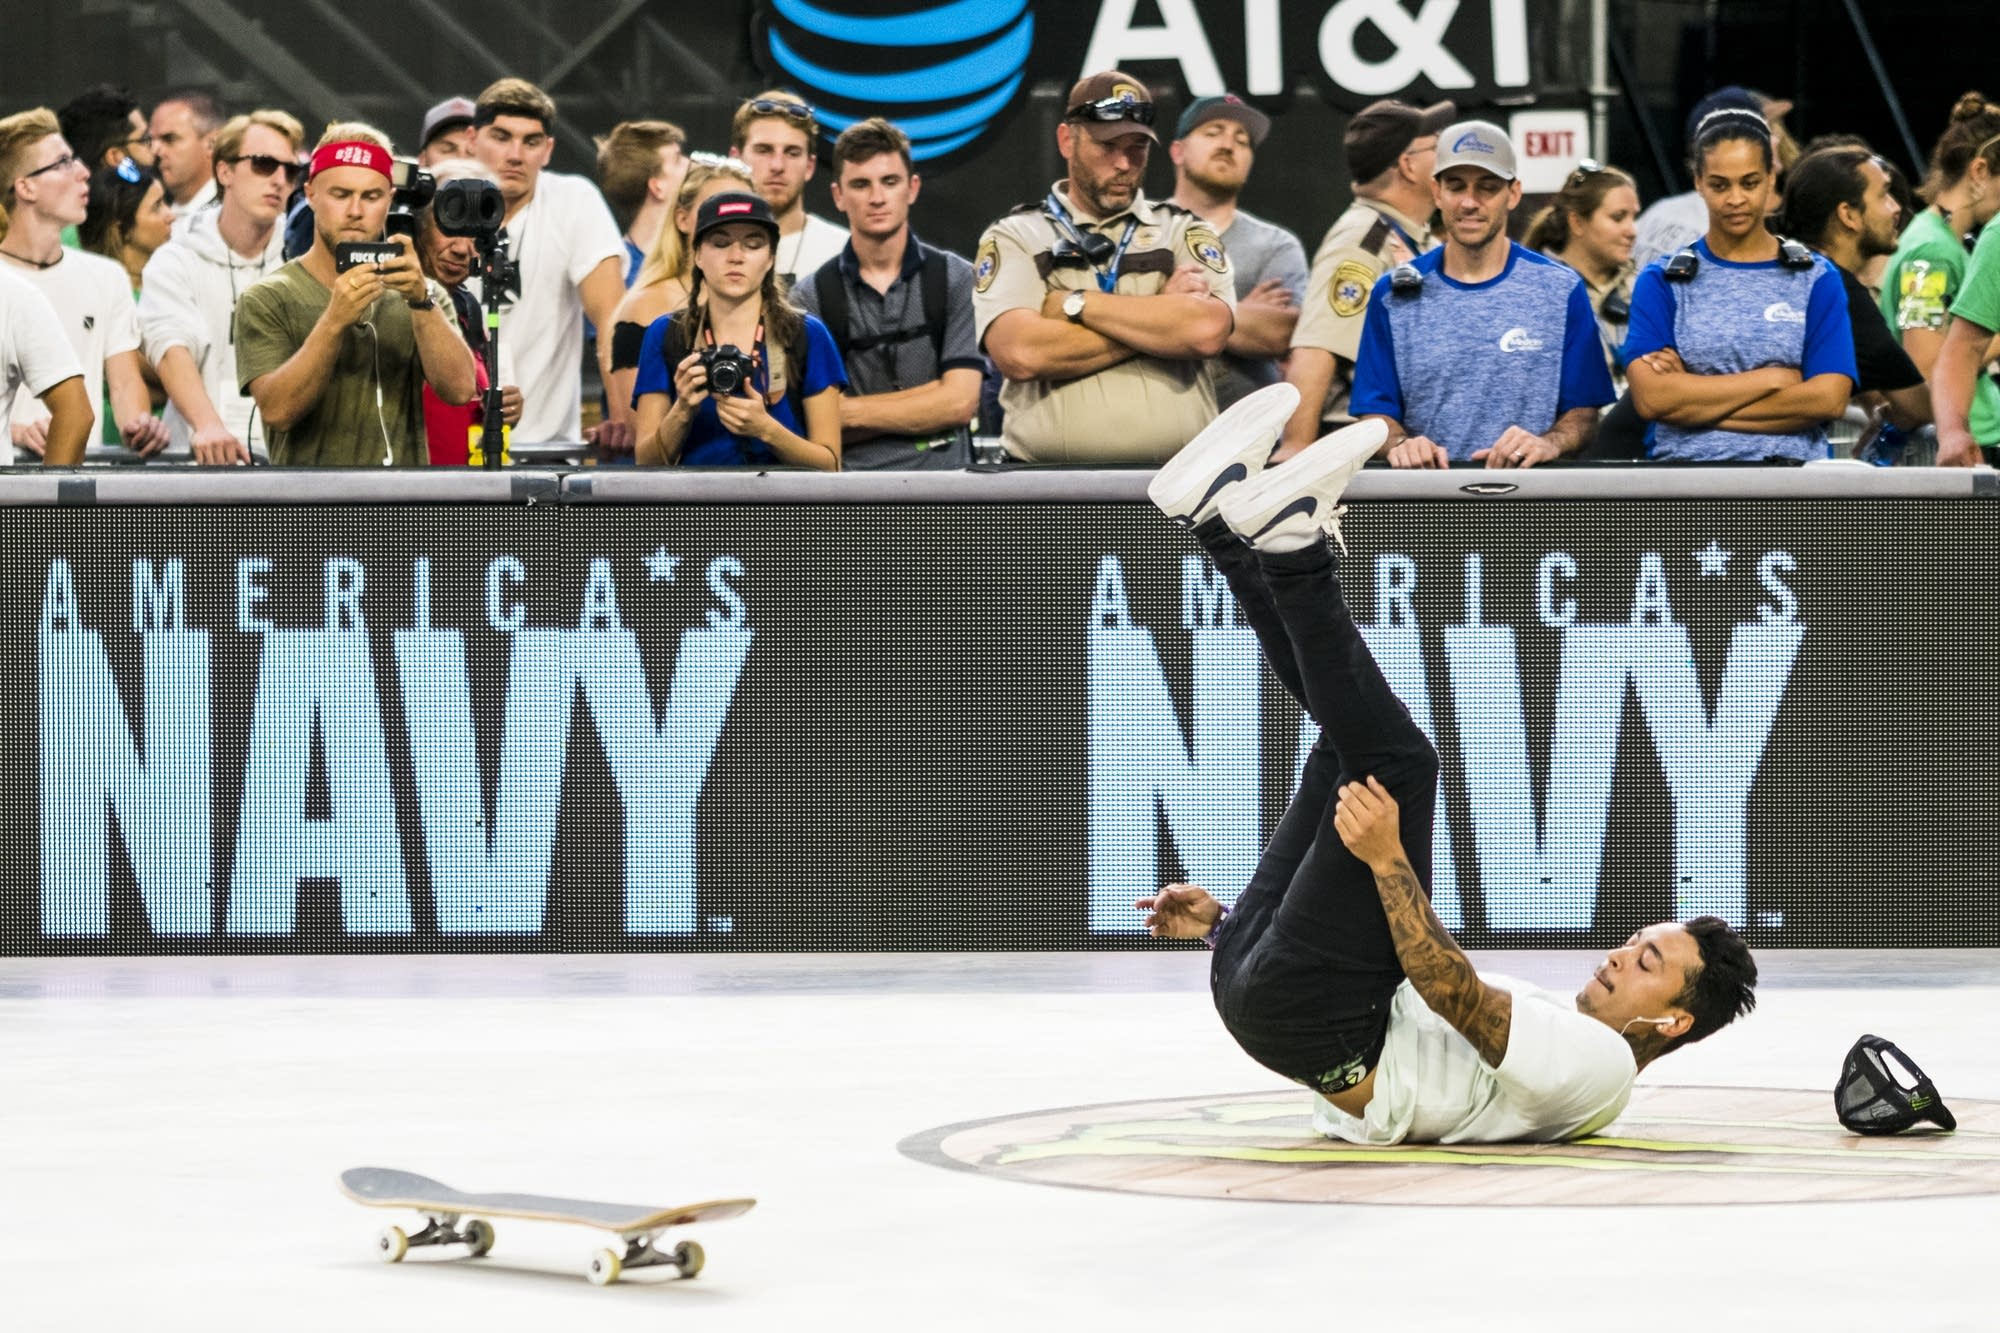 Nyjah Huston wipes out during a run in the men's street skateboard finals.